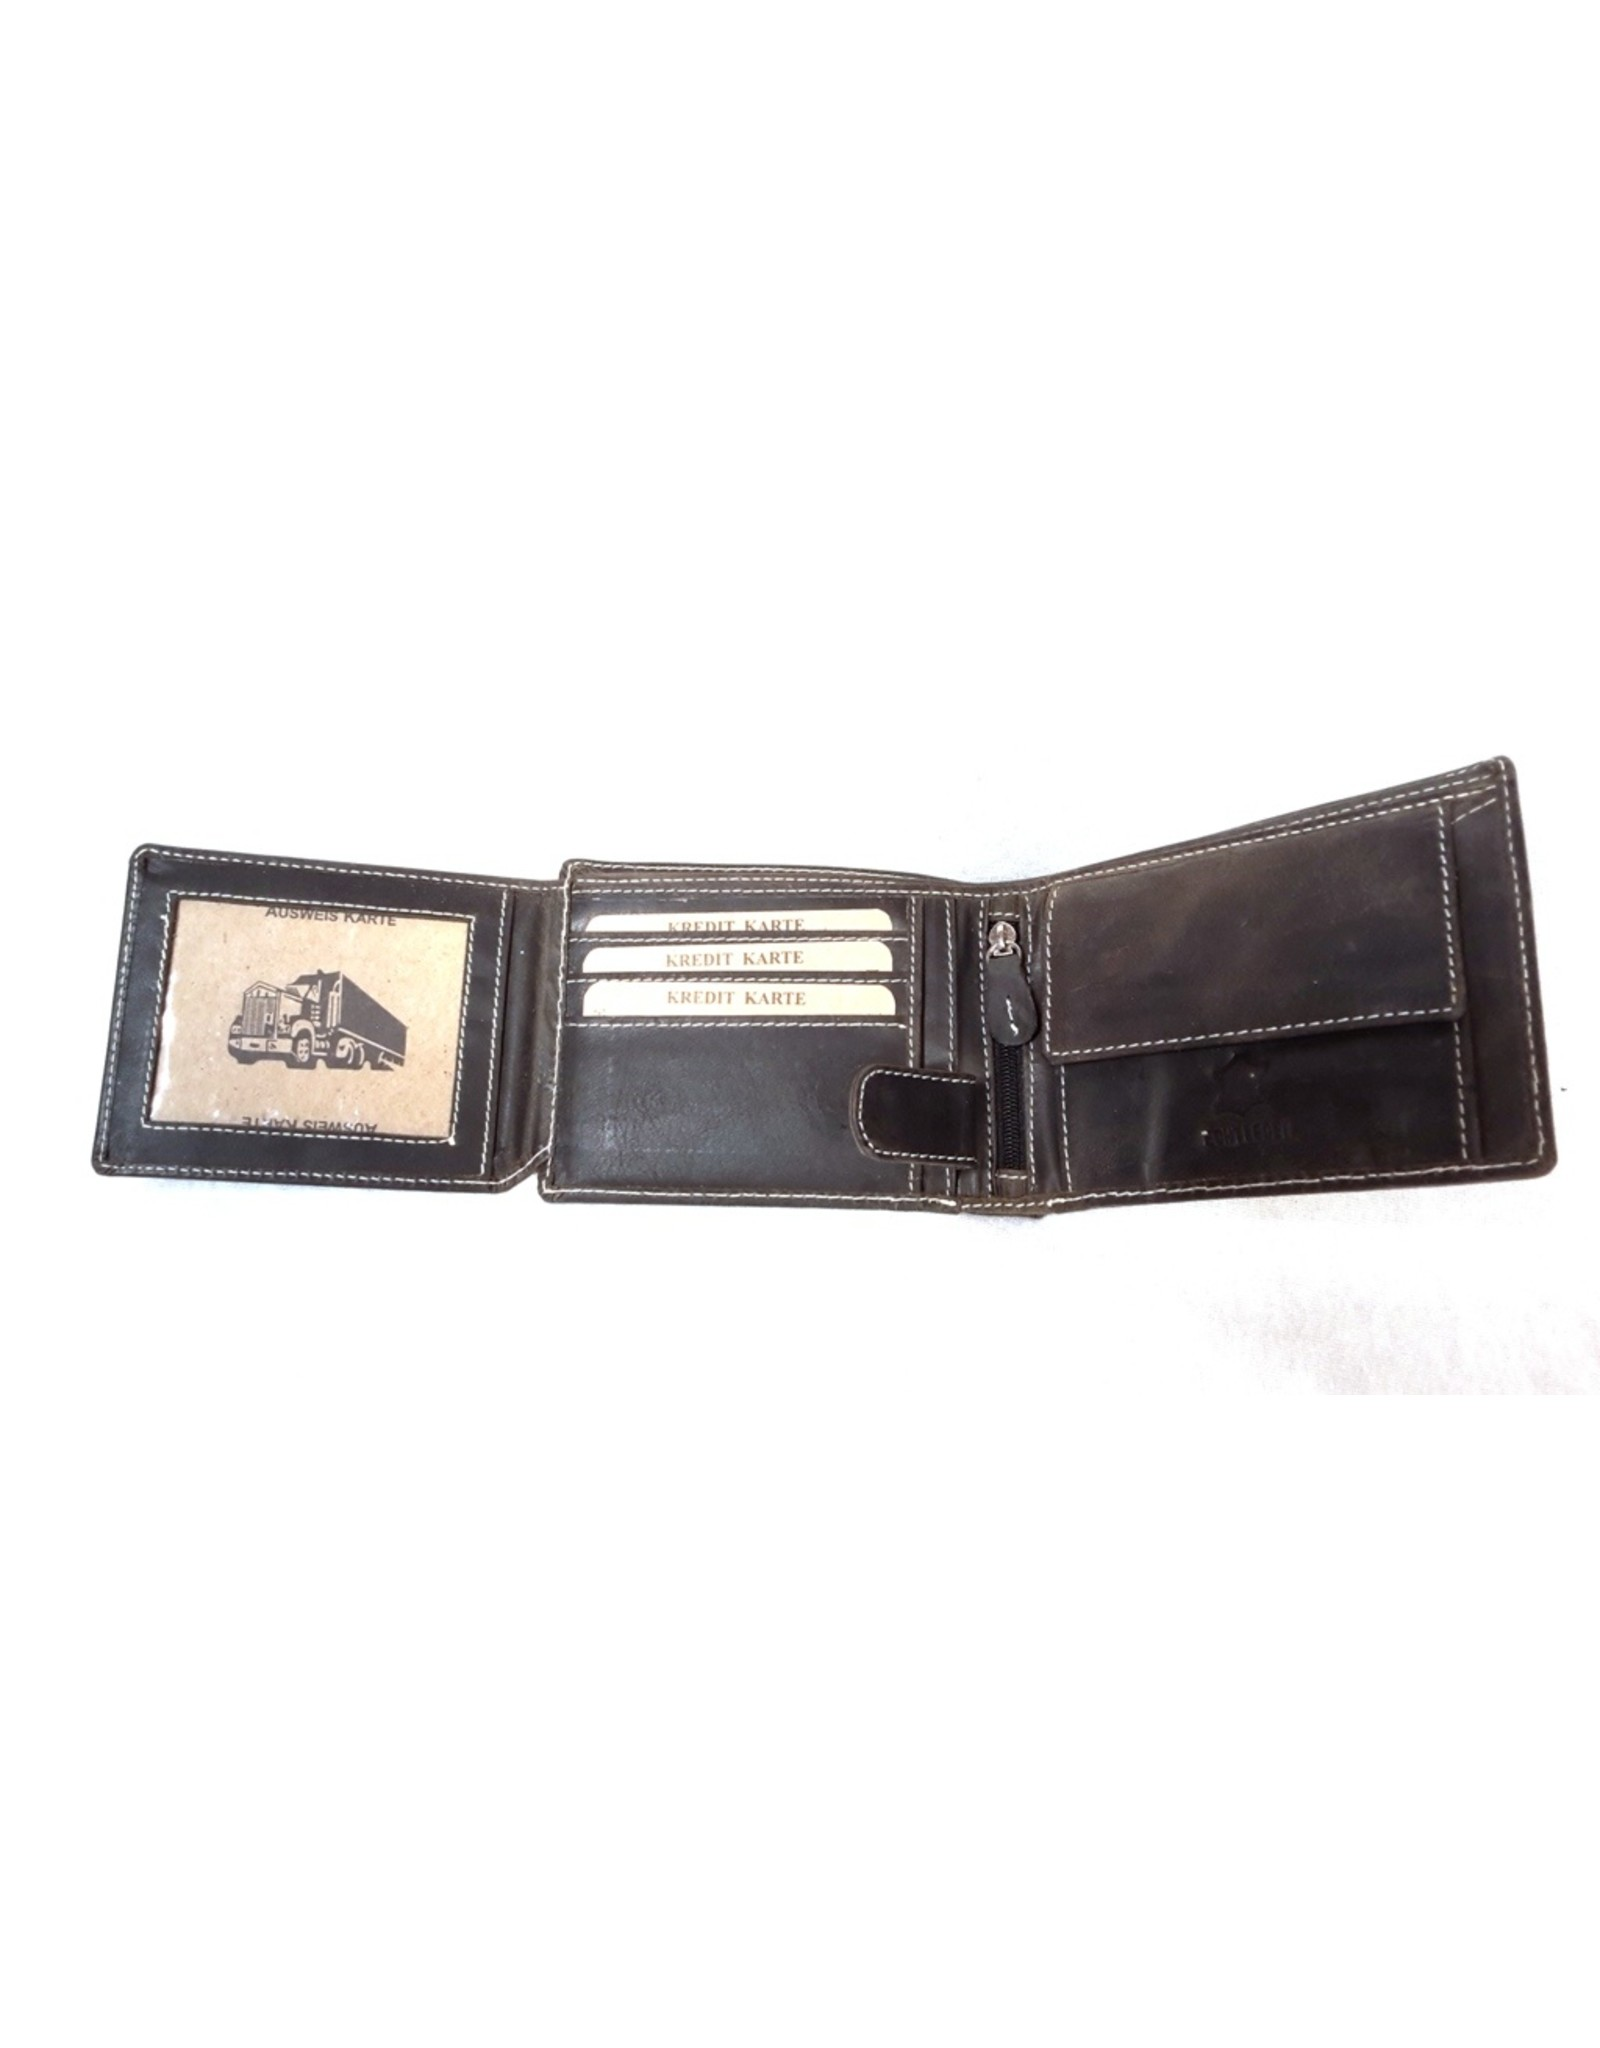 Wild Club Only Leather Wallets - Leather wallet with embossed Truck